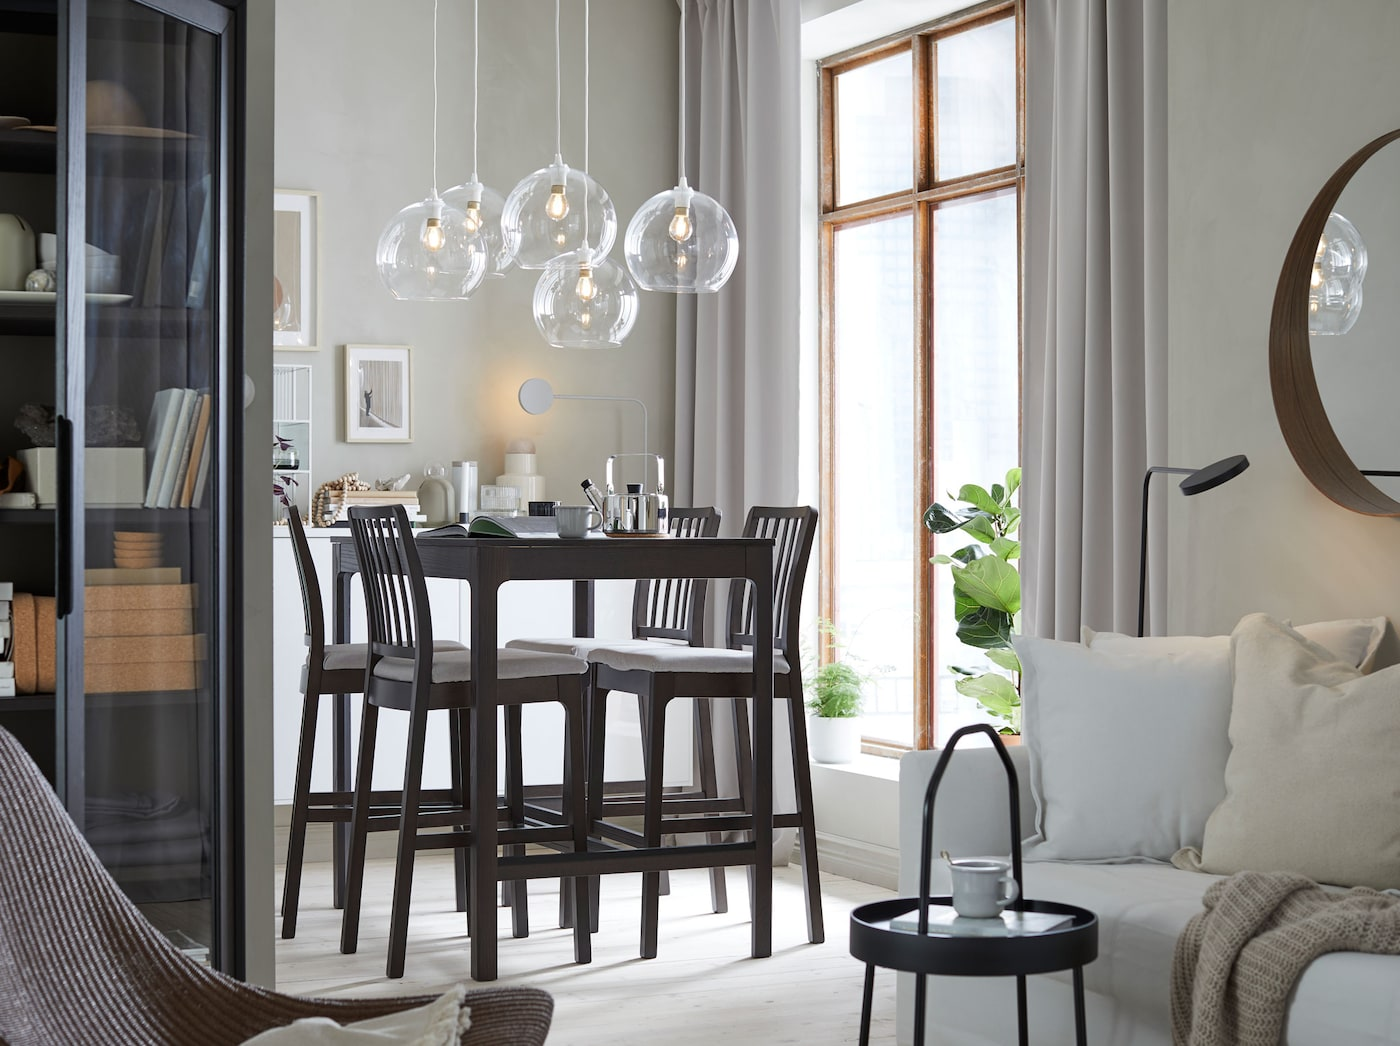 Create a simple yet classic dining space and living room space using EKEDALEN dark grey four-seater bar table and high bar stools, along with soft white HOLMSUND sofa bed and JAKOBSBYN clear glass pendant lampshades.